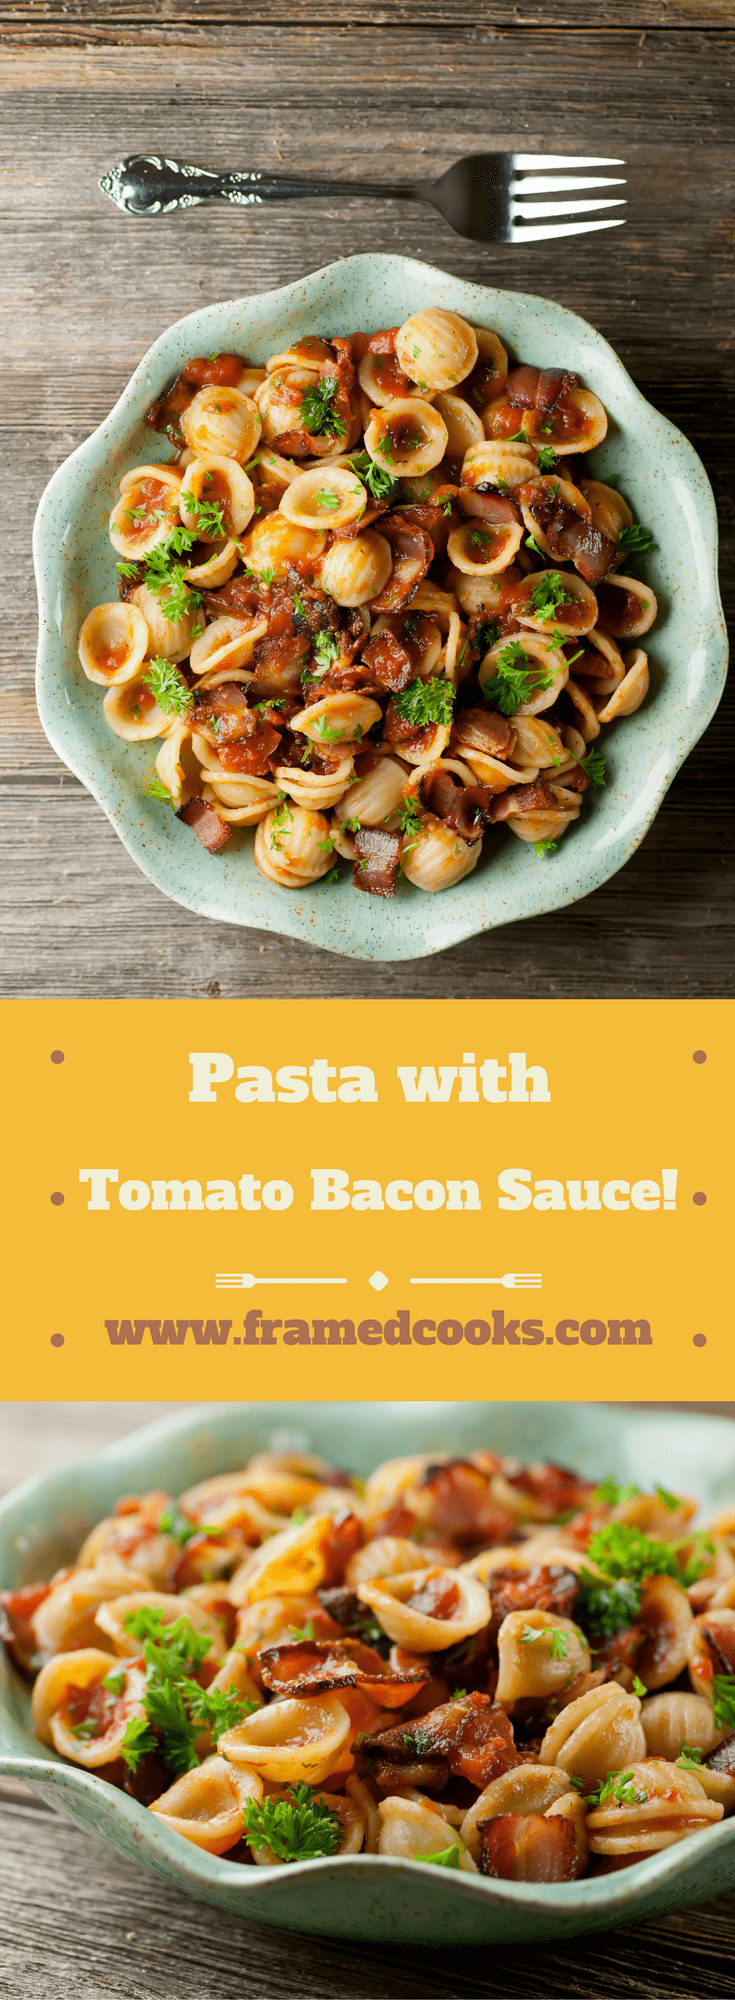 Liven up your pasta sauce with bacon! This easy recipe for pasta with tomato bacon sauce will have them asking for supper seconds.